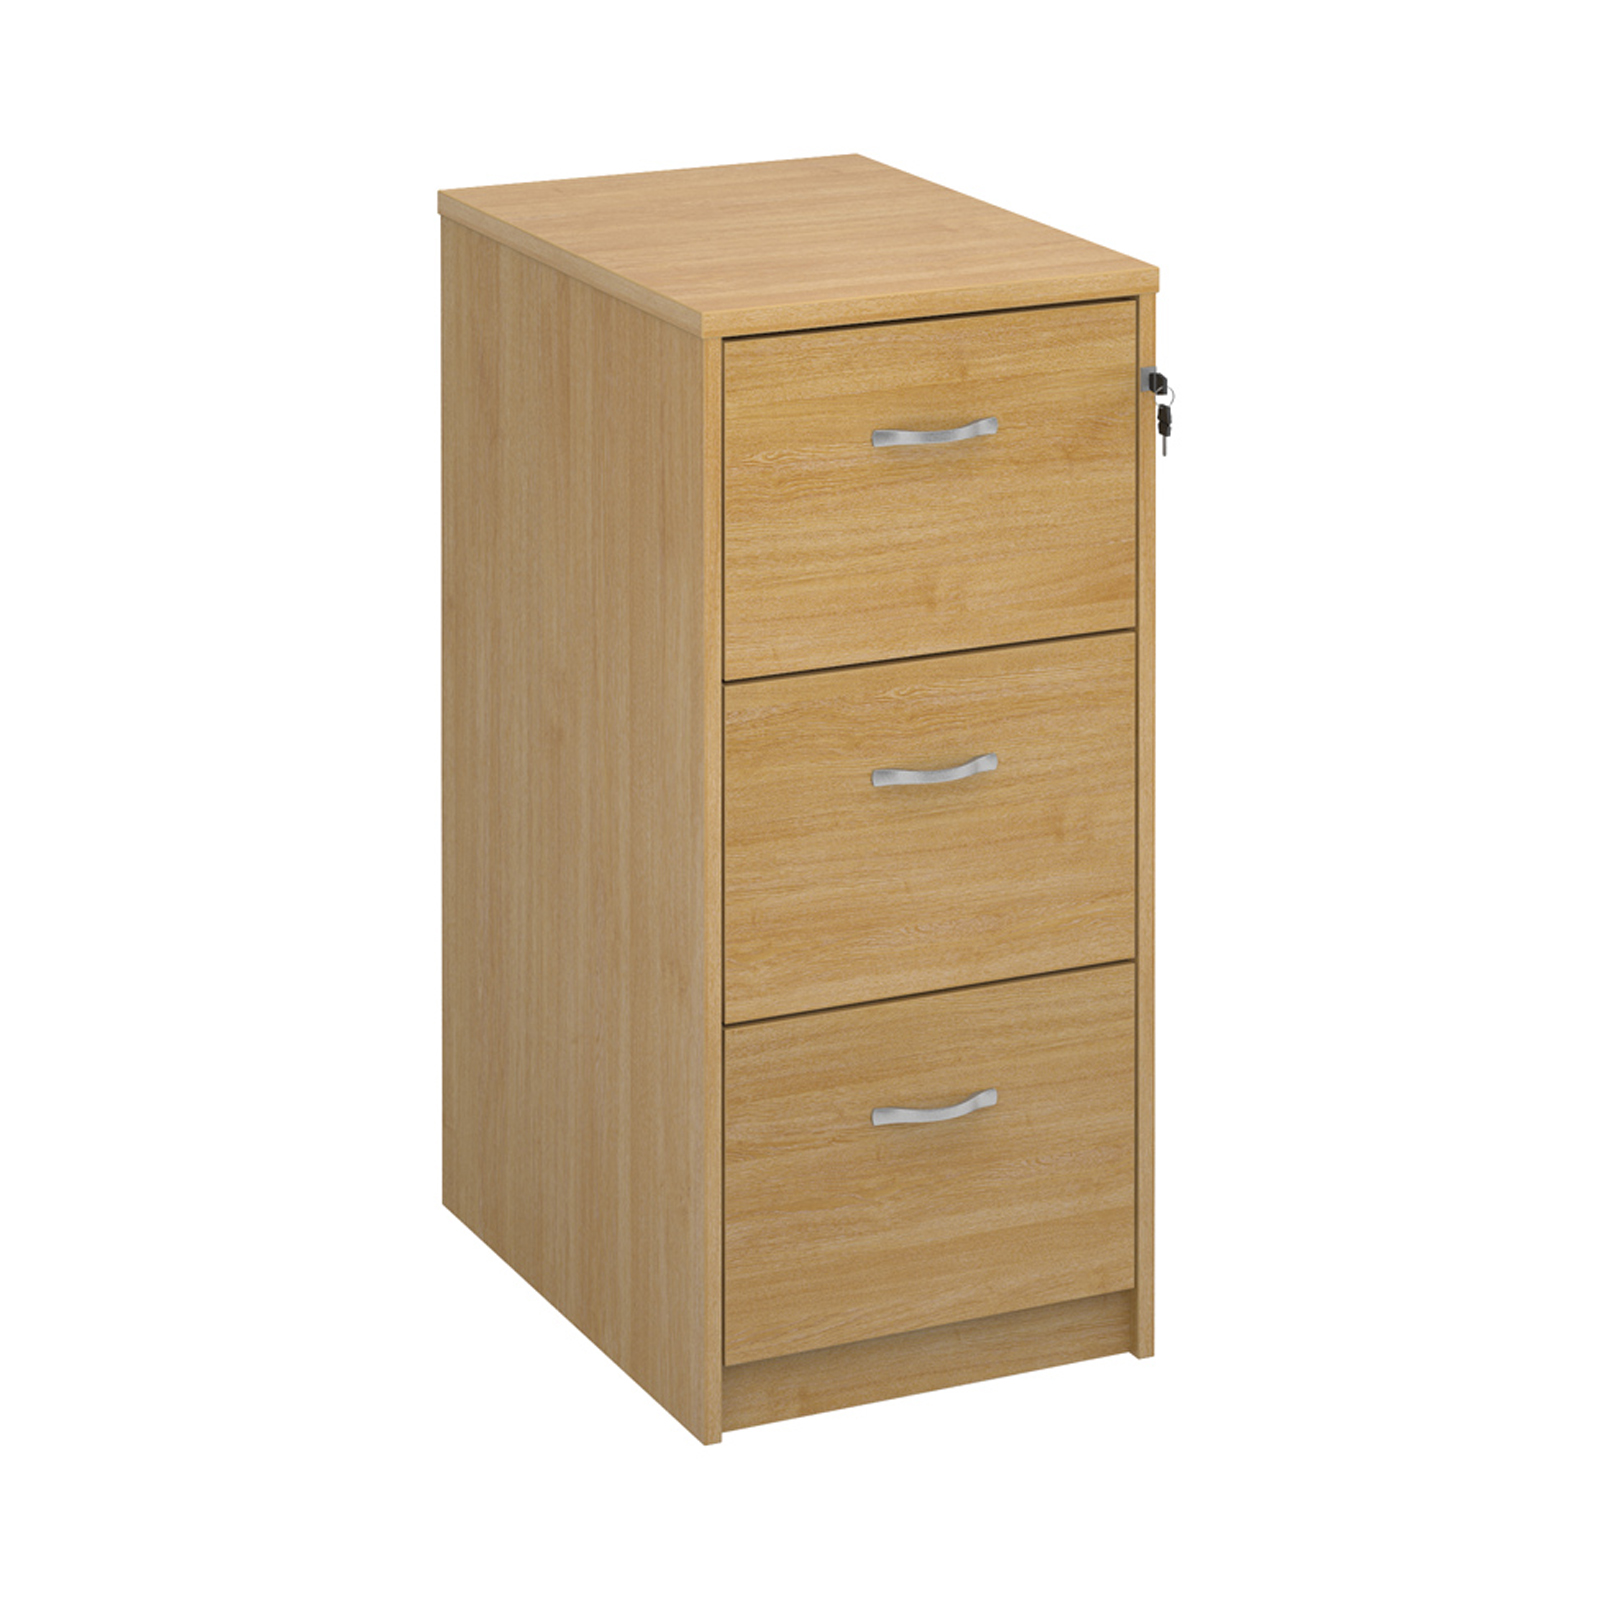 Wood Wooden 3 drawer filing cabinet with silver handles 1045mm high - oak